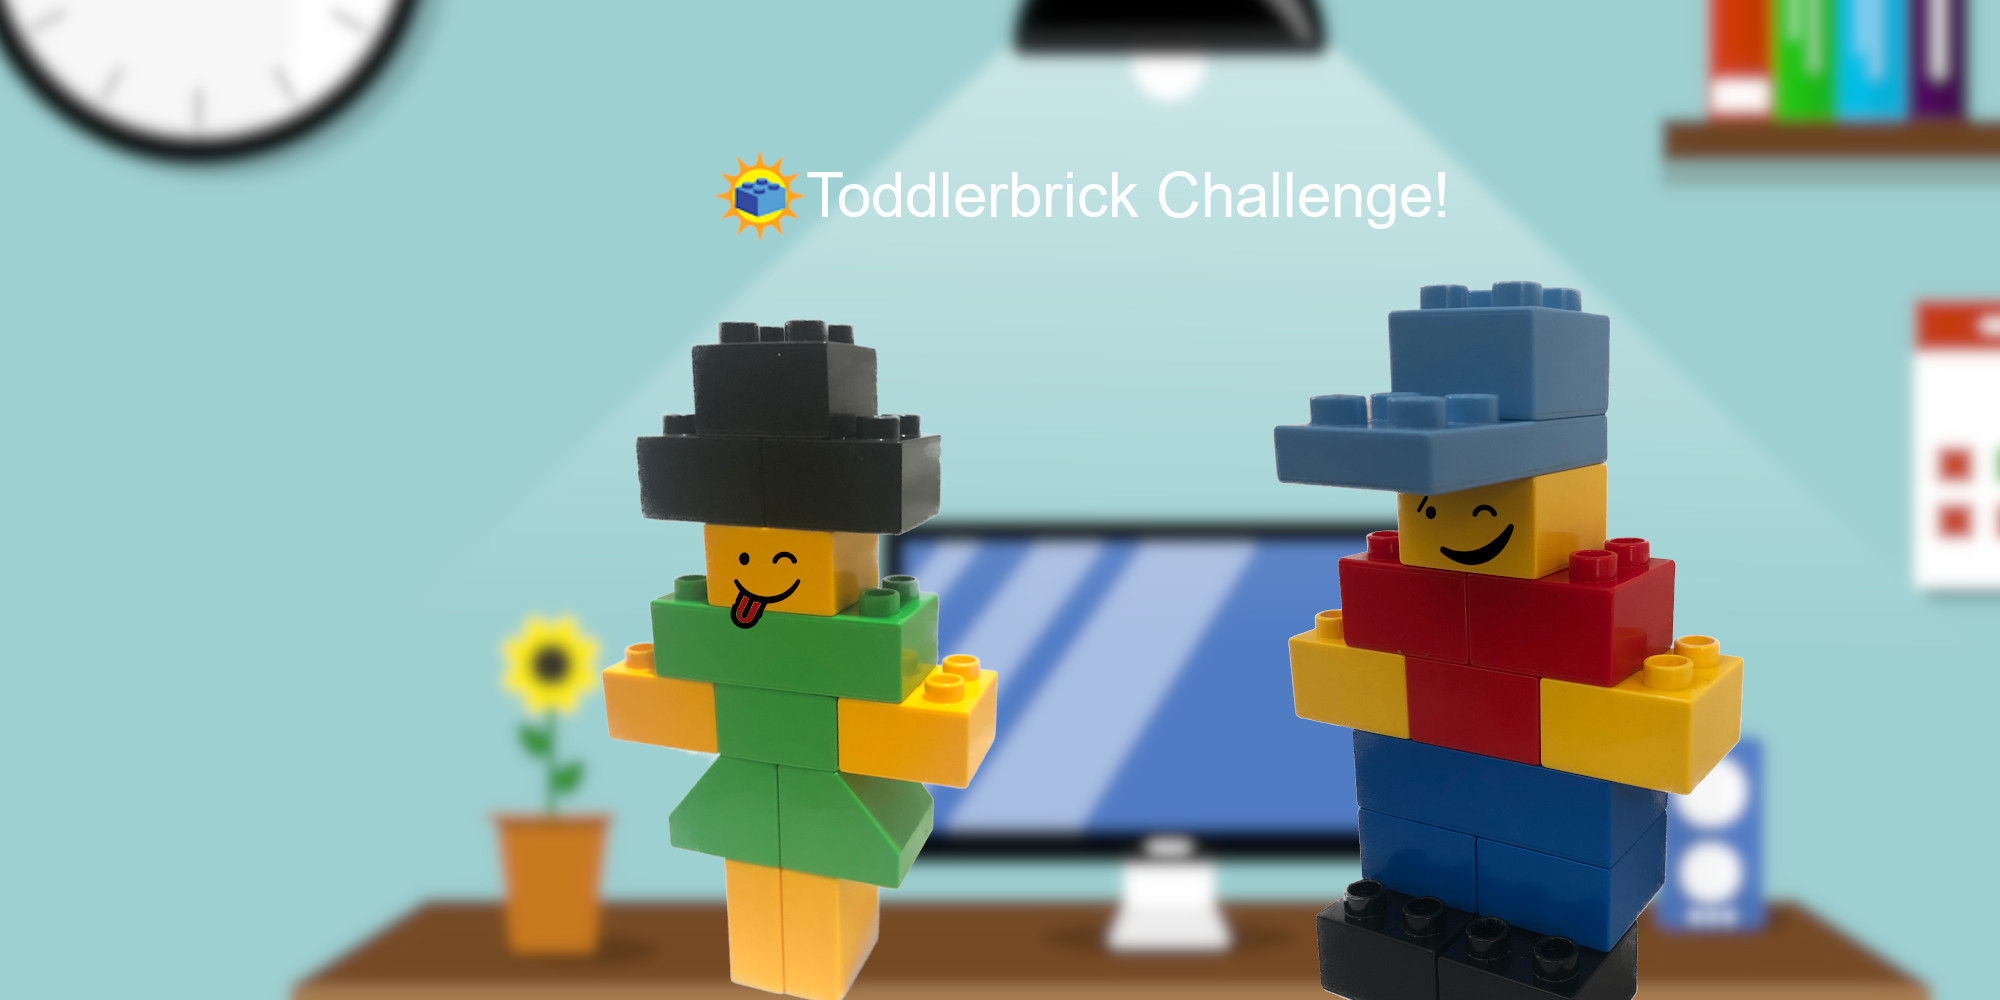 Toddlerbrick 2 Way Challenge